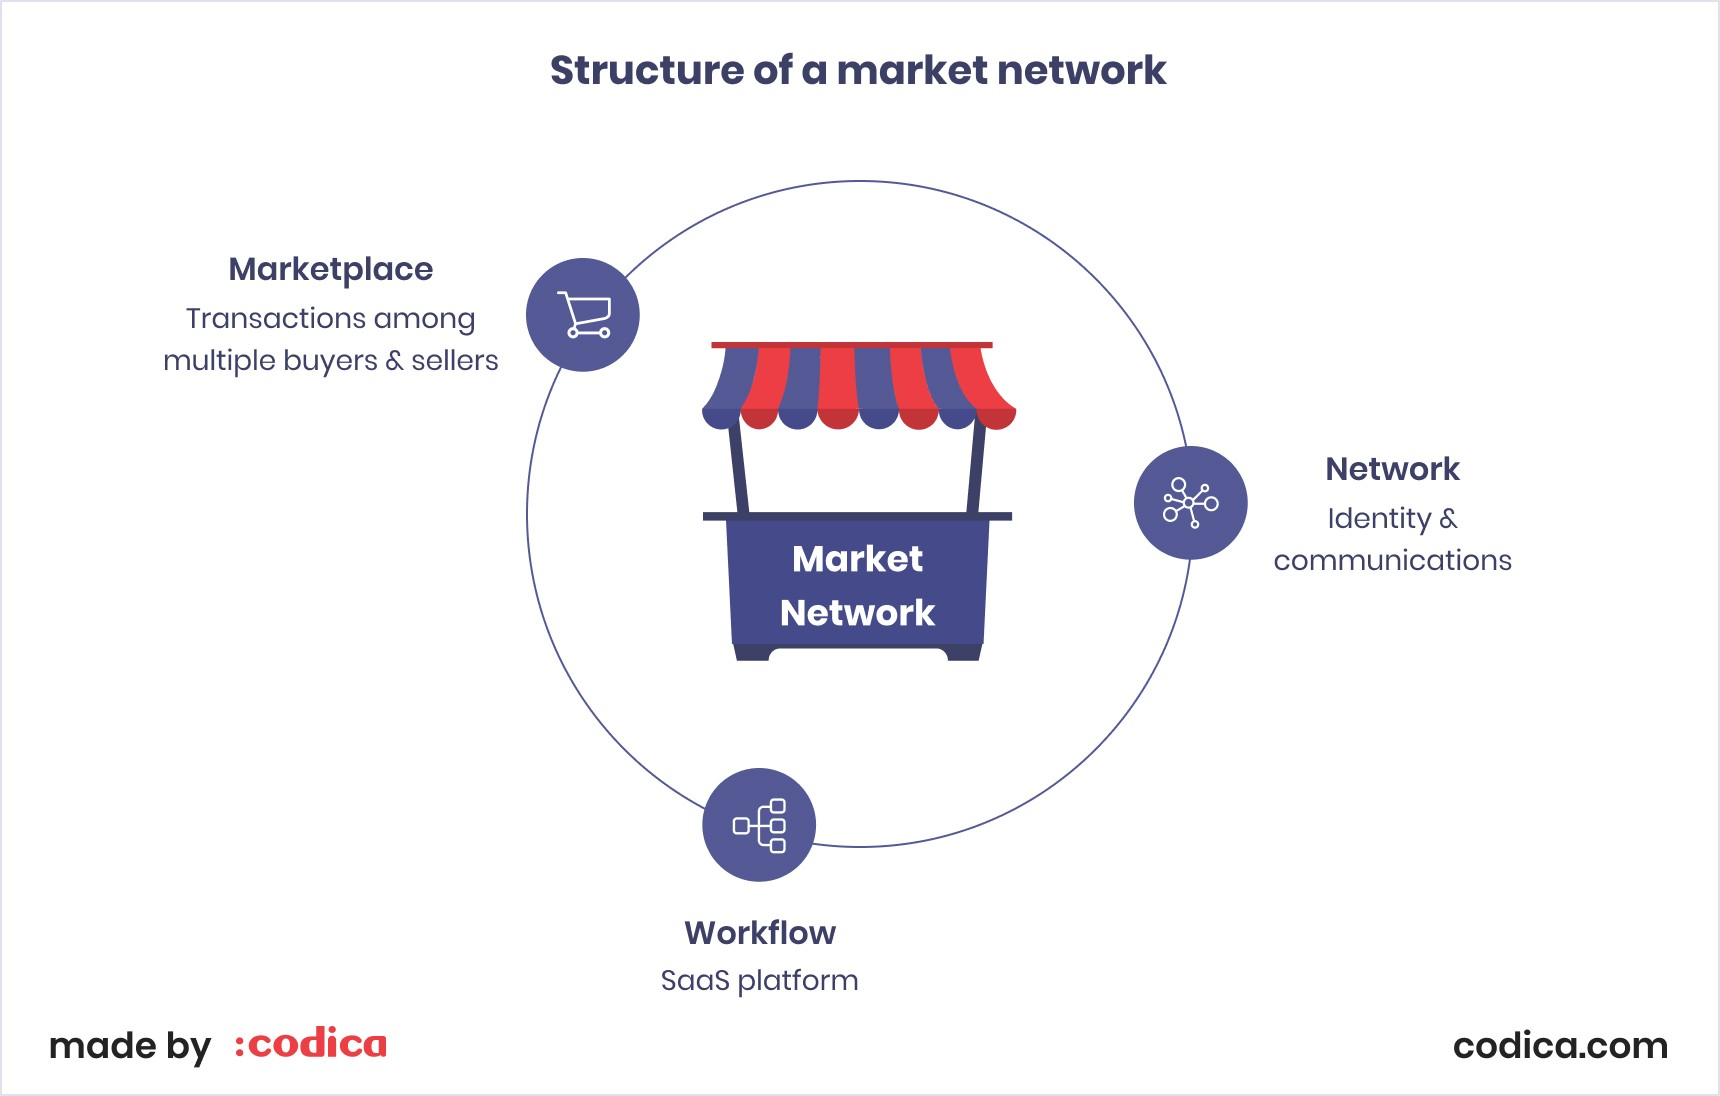 The structure of a market network